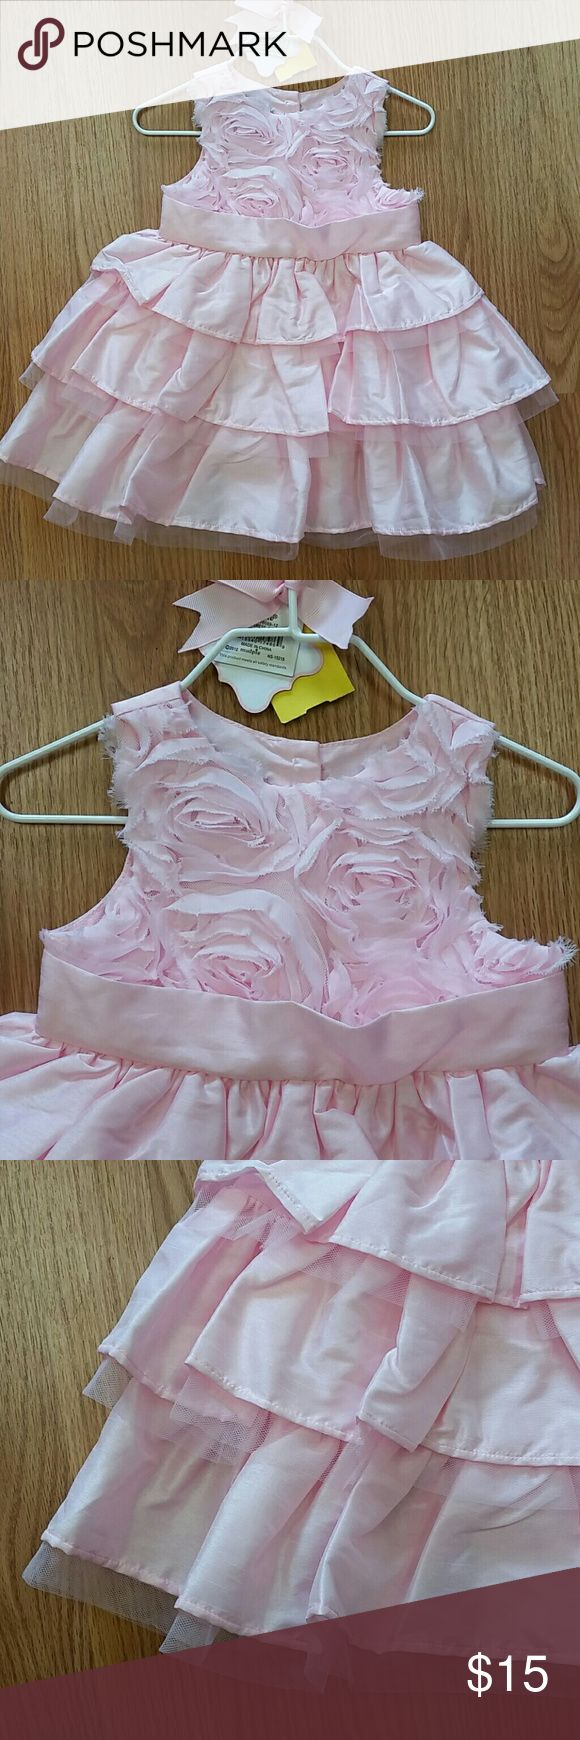 Mud Pie -NWT New with tags. Tag says size 0-6M. Mud Pie Dresses